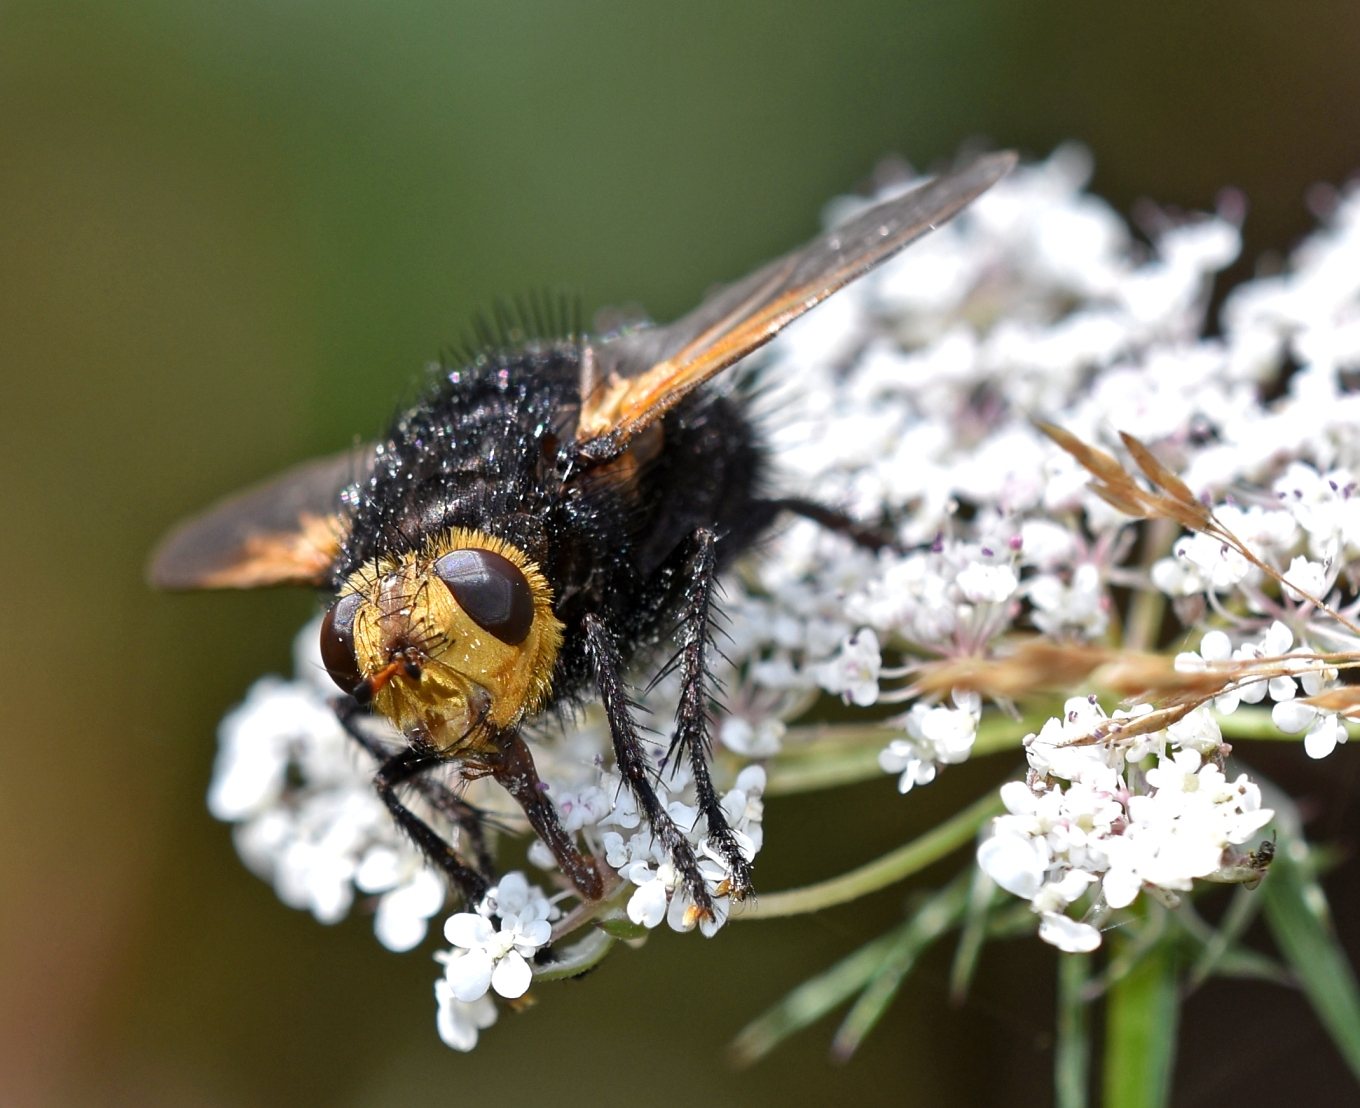 Giant tachinid fly (Tachina grossa) 7 Sept 18 front on